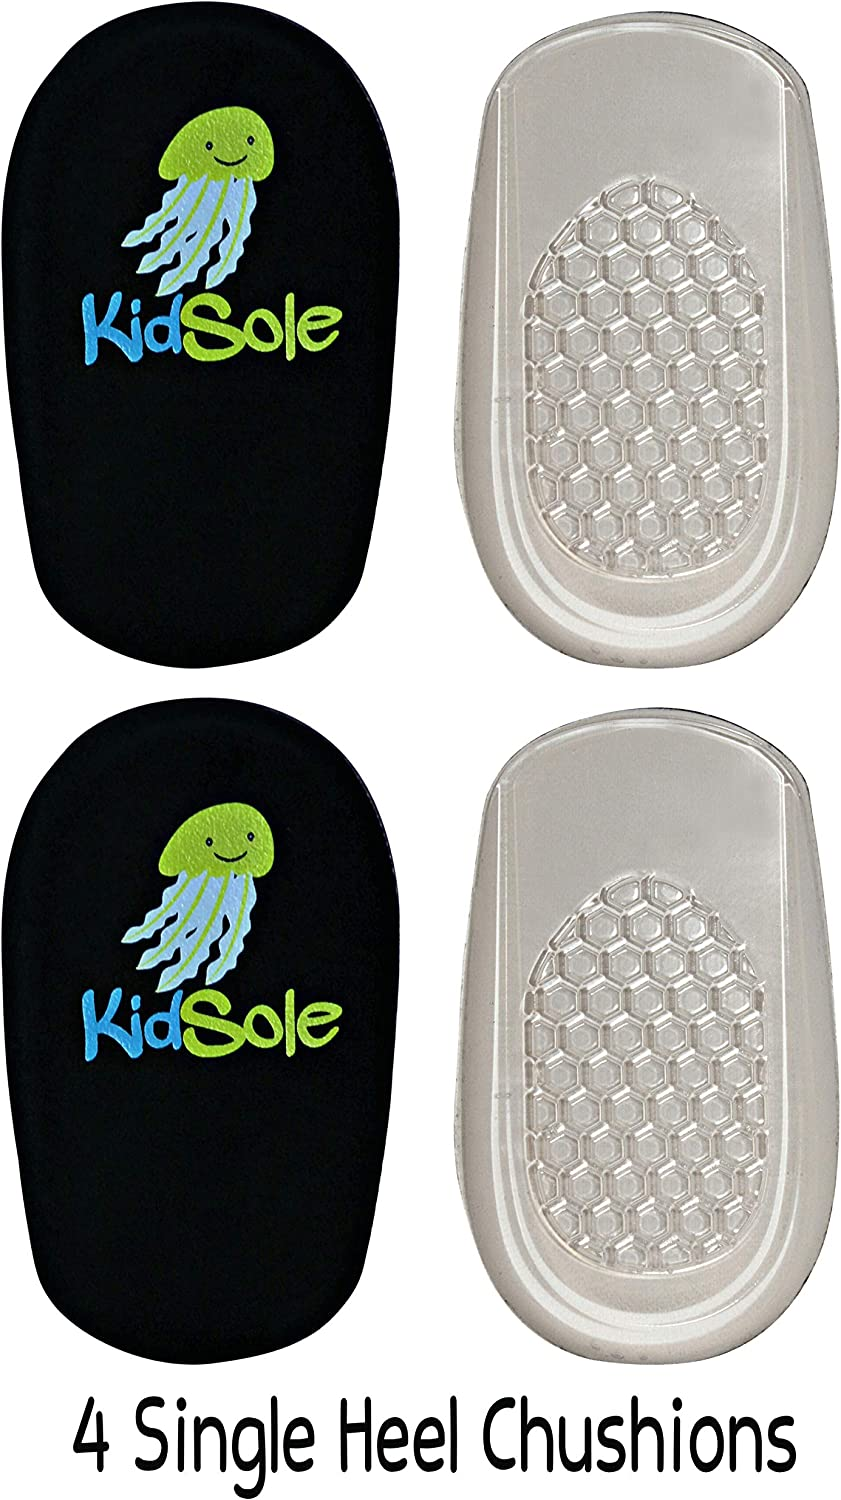 Black Jelly Premium Heel Cups//Heel Pads With Super Adhesive Gel Bottom US Kids Size 1-6 2 Pairs Brand New 2017 Release by KidSole.